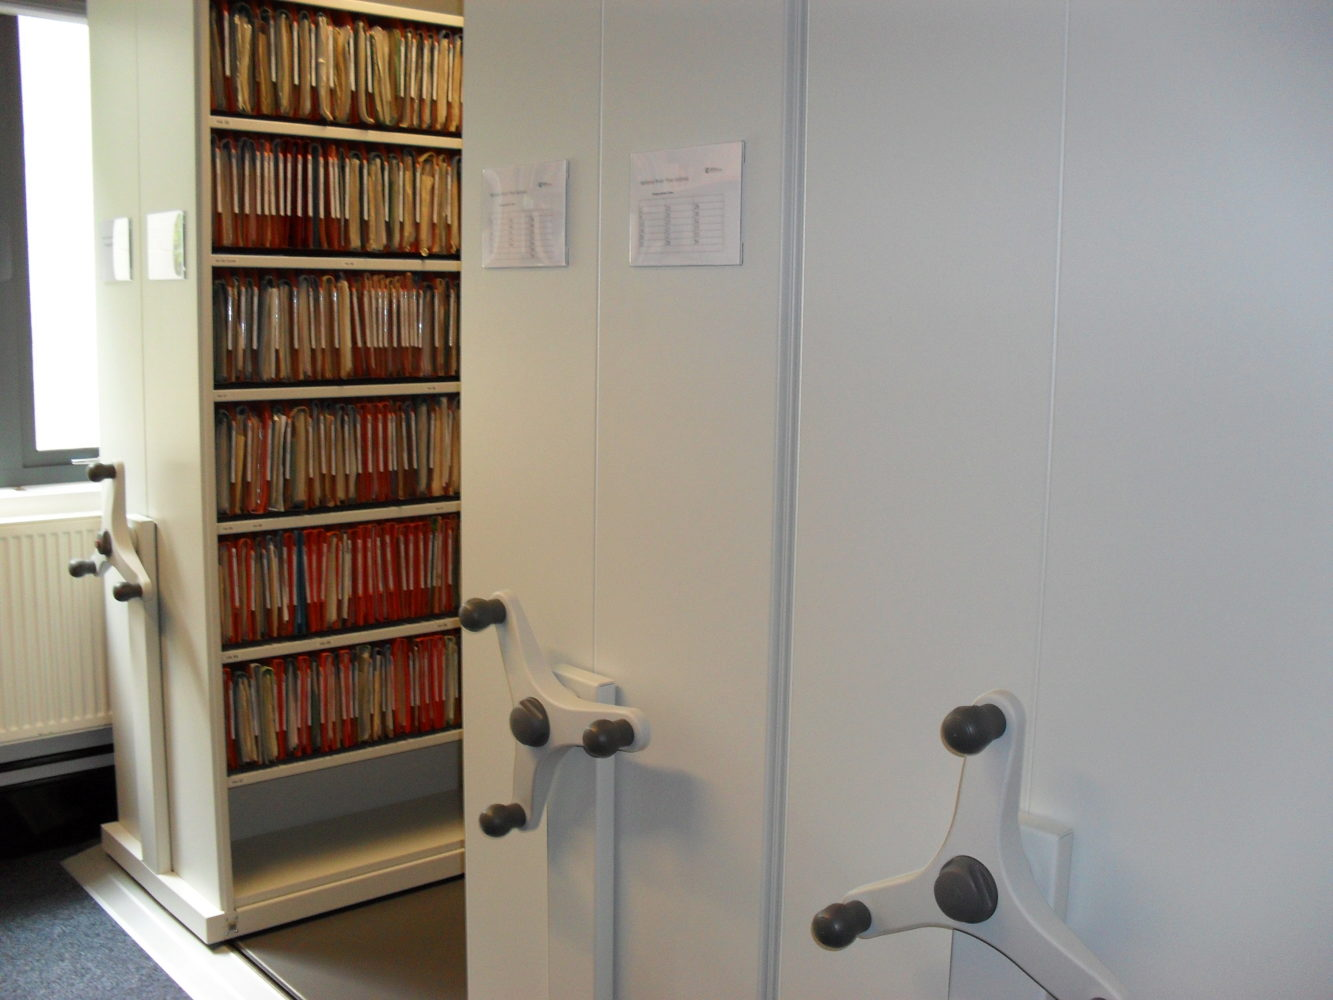 Lateral File Storage Shelving